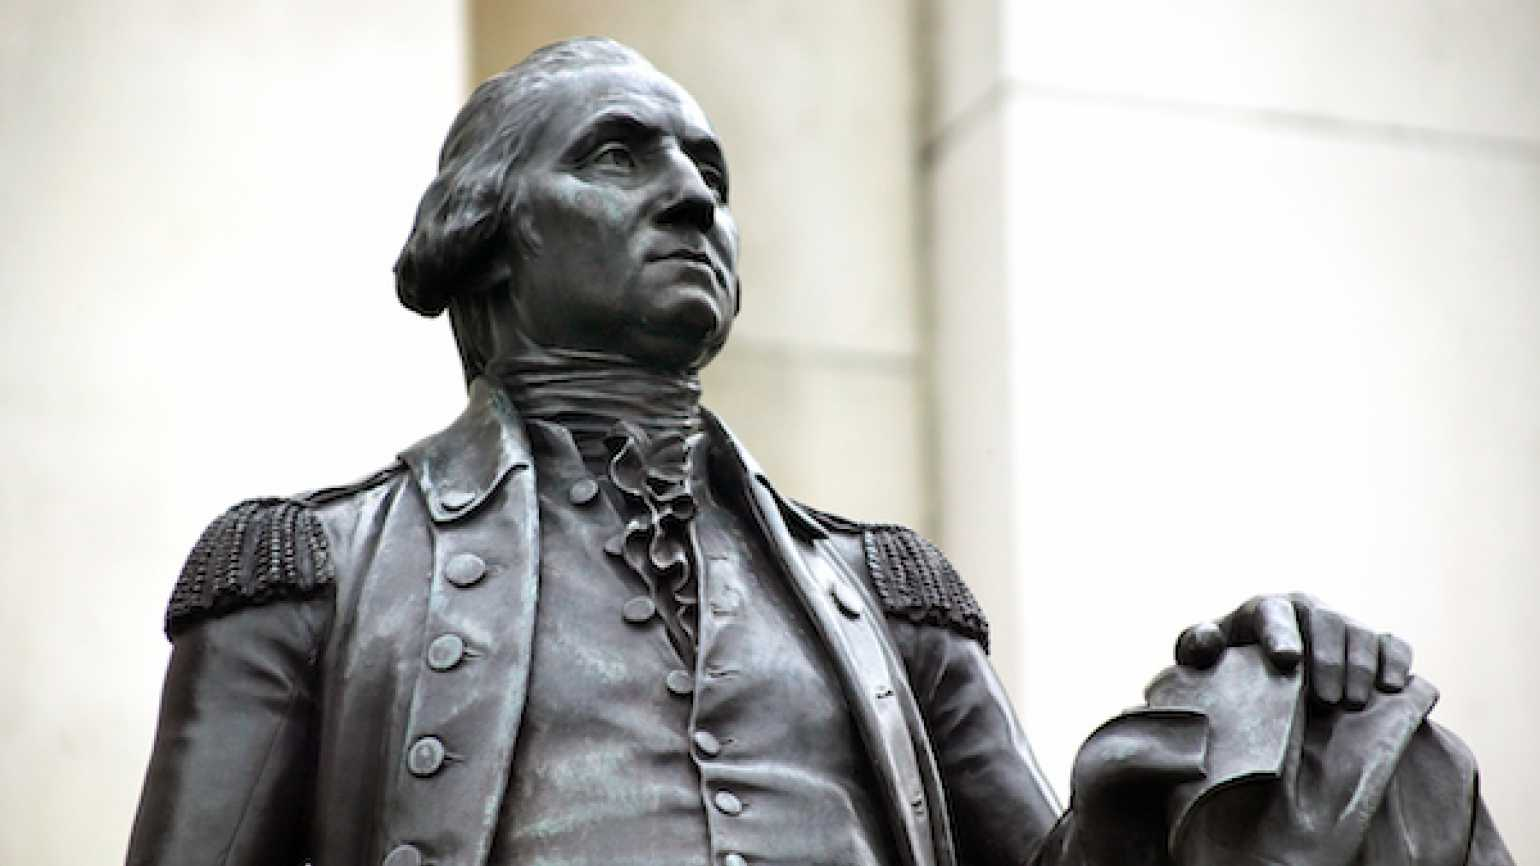 An inspiring prayer from our first president and founding father, George Washington.